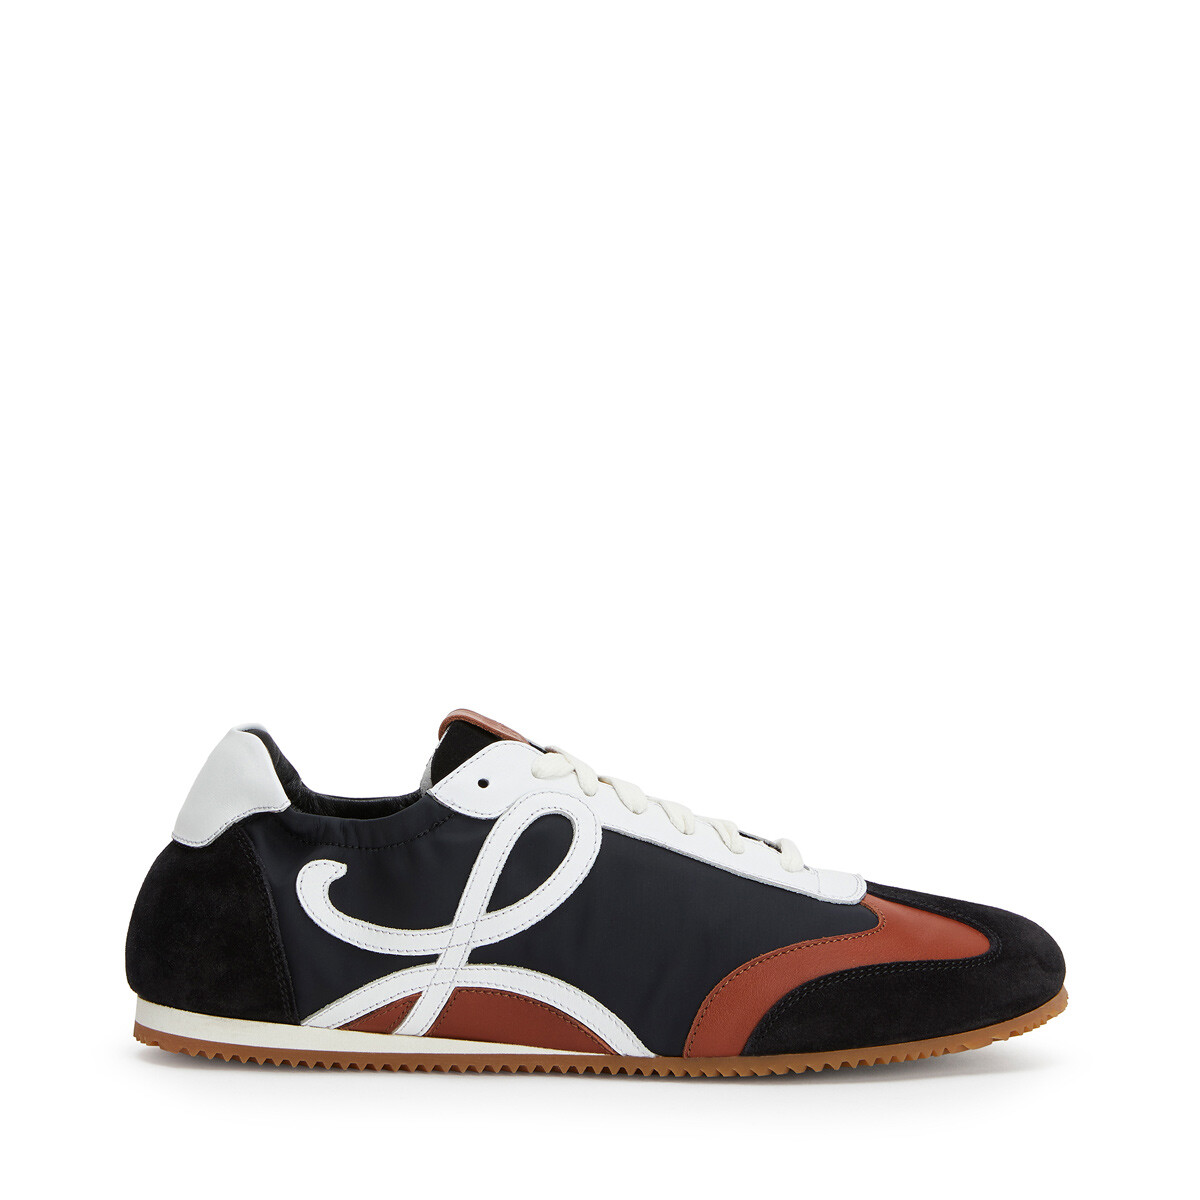 LOEWE Ballet Runner Black/White/Brown front